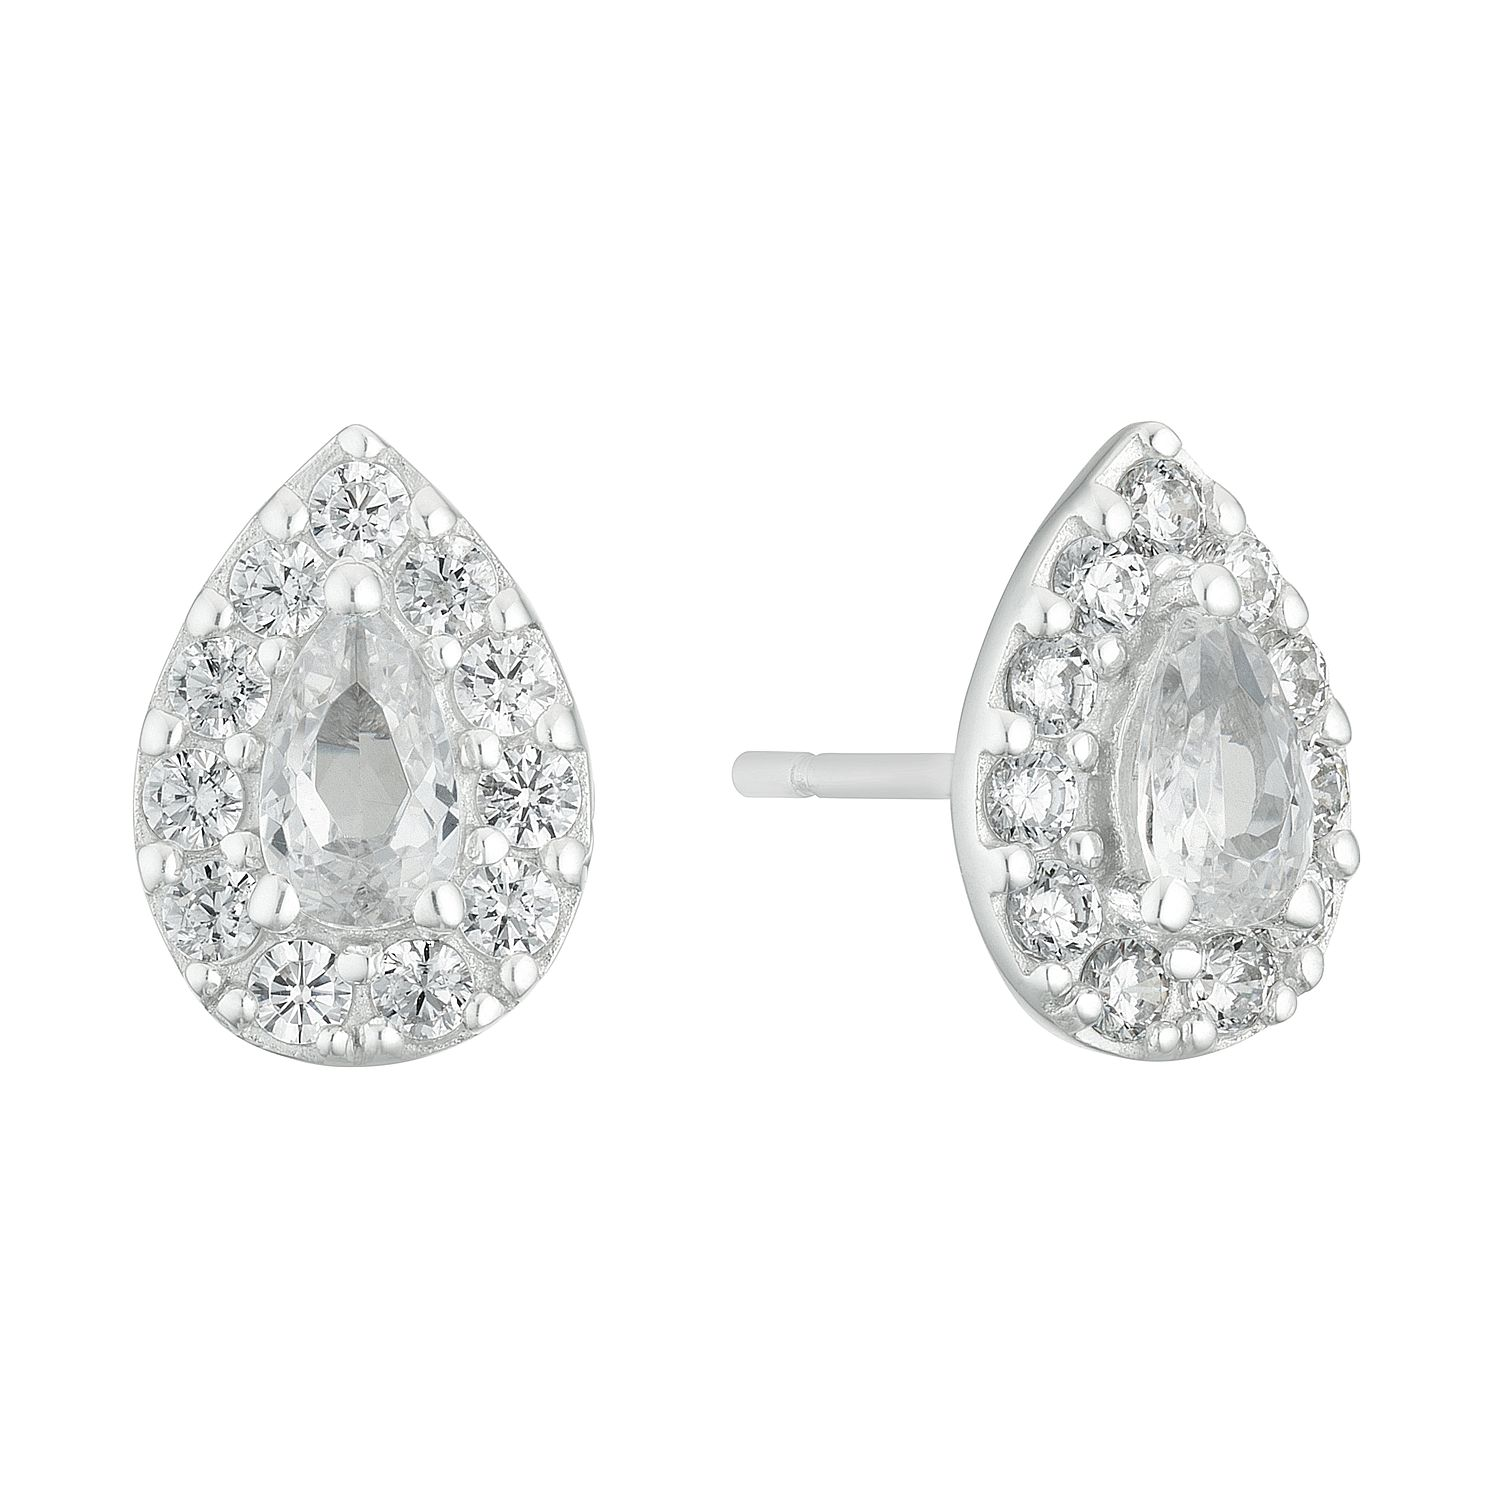 9ct White Gold Cubic Zirconia Pear Shape Halo Stud Earrings - Product number 3142272